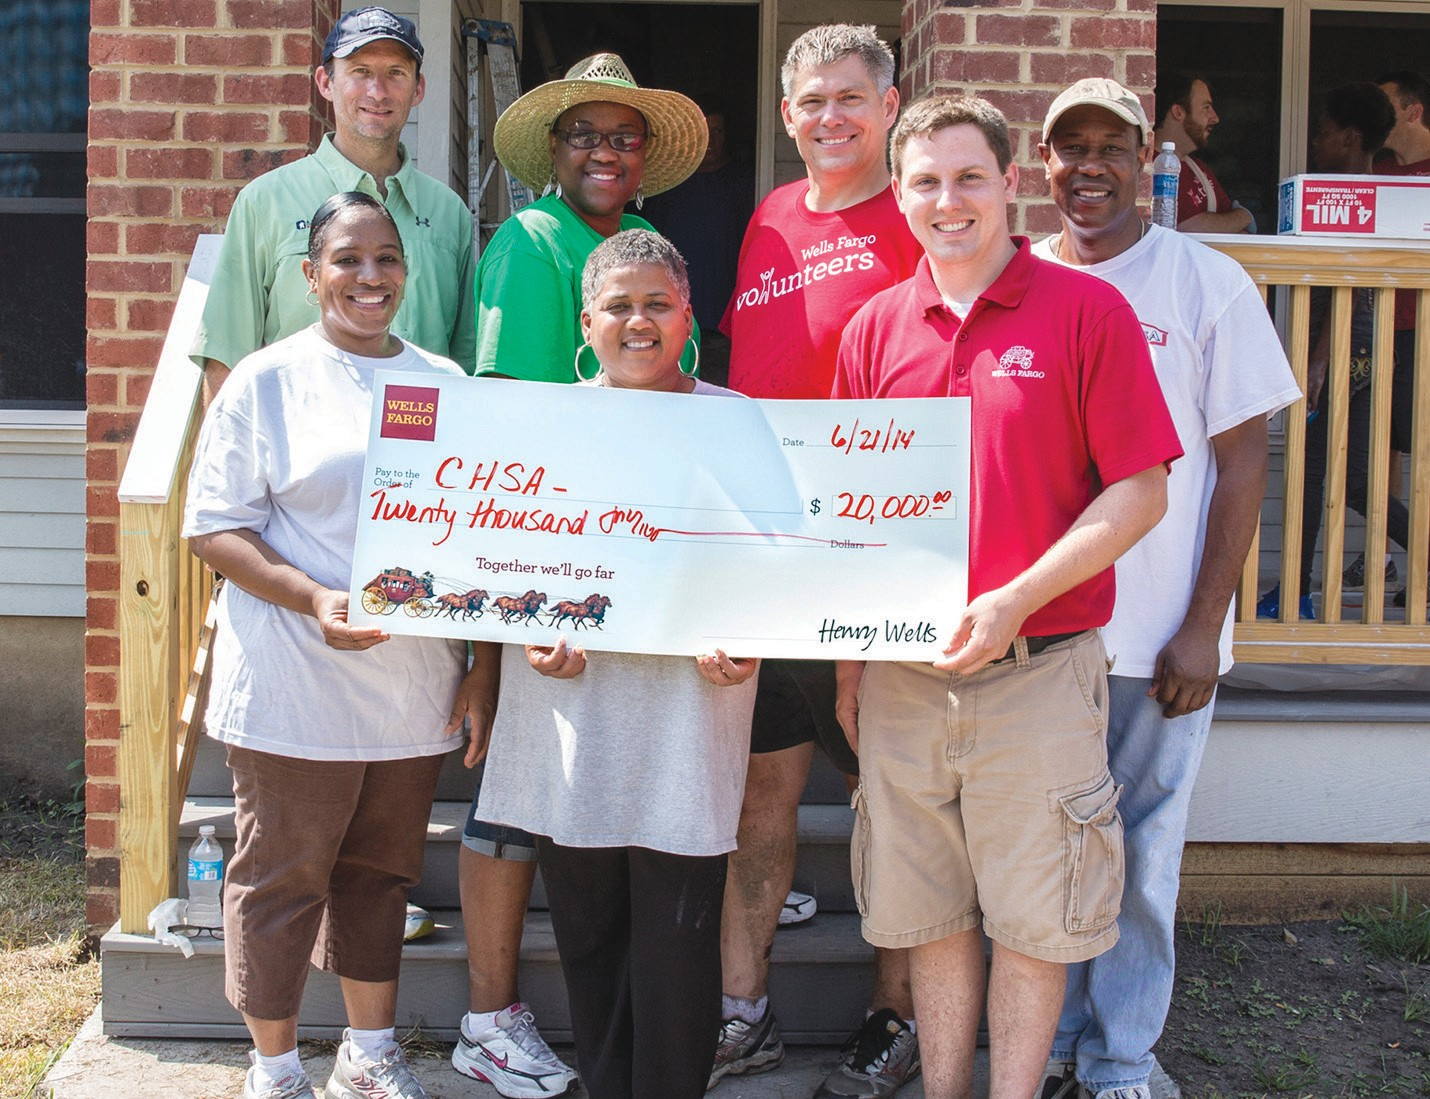 Wells Fargo presented CHSA with a check for $20,000 to help build a home for a family in savannah Gardens. It's all part of Wells Fargo's Community Service Super Saturday. Back row L to R: Andy Ubinski, A.Ramon Inc.; Anita Smith-Dixon, City of Savannah; Todd Householder, Wells Fargo district manager; Darryl Daise, CHSA. Front row, L to R: Deneen Young, CHSA; Lillian Grant-Baptiste YouthBuild Savannah, Jake Jordan, Wells Fargo store manager.